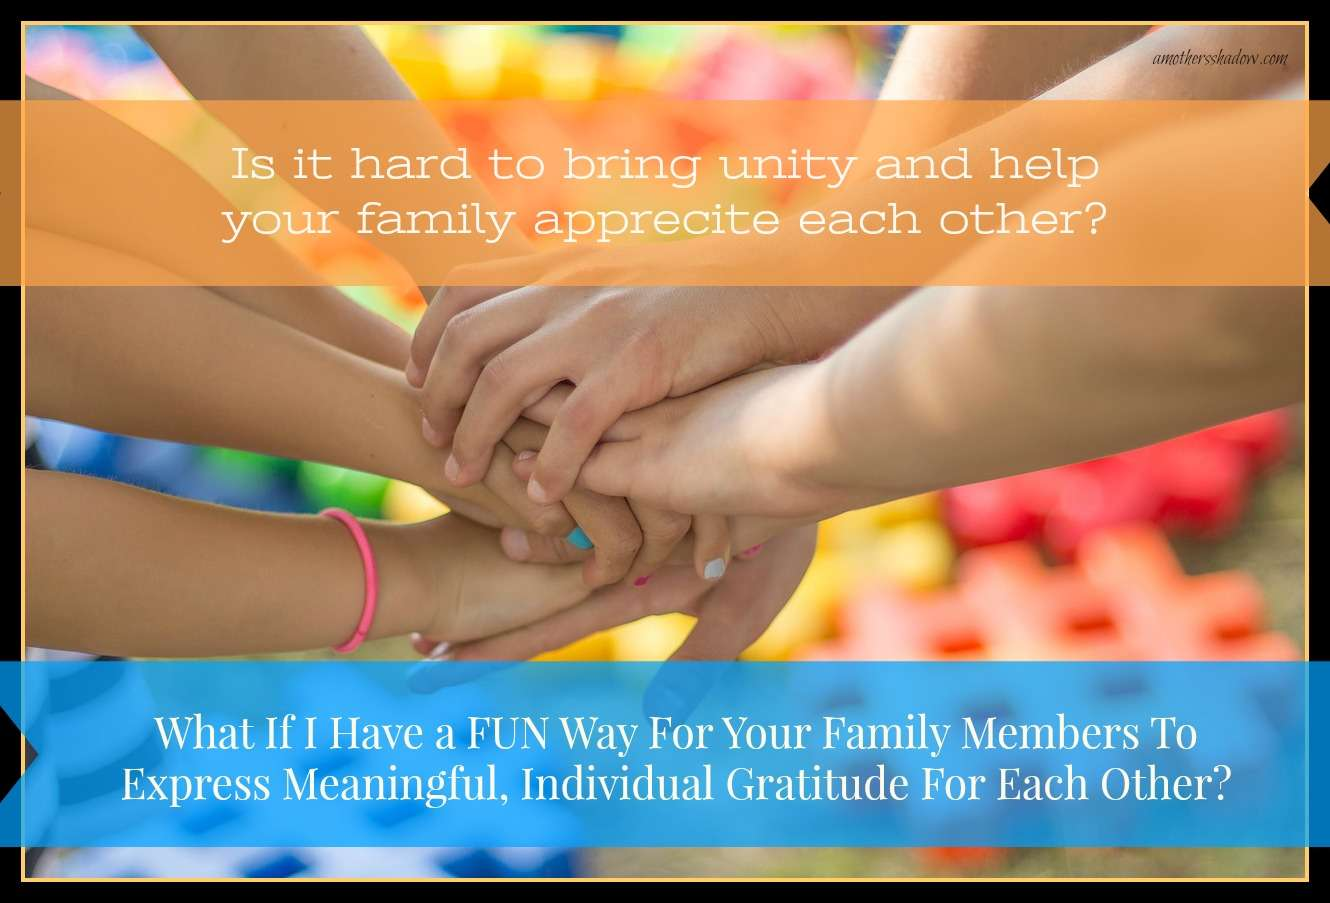 EASY Way For Family To SHOW Gratitude for EACH OTHER